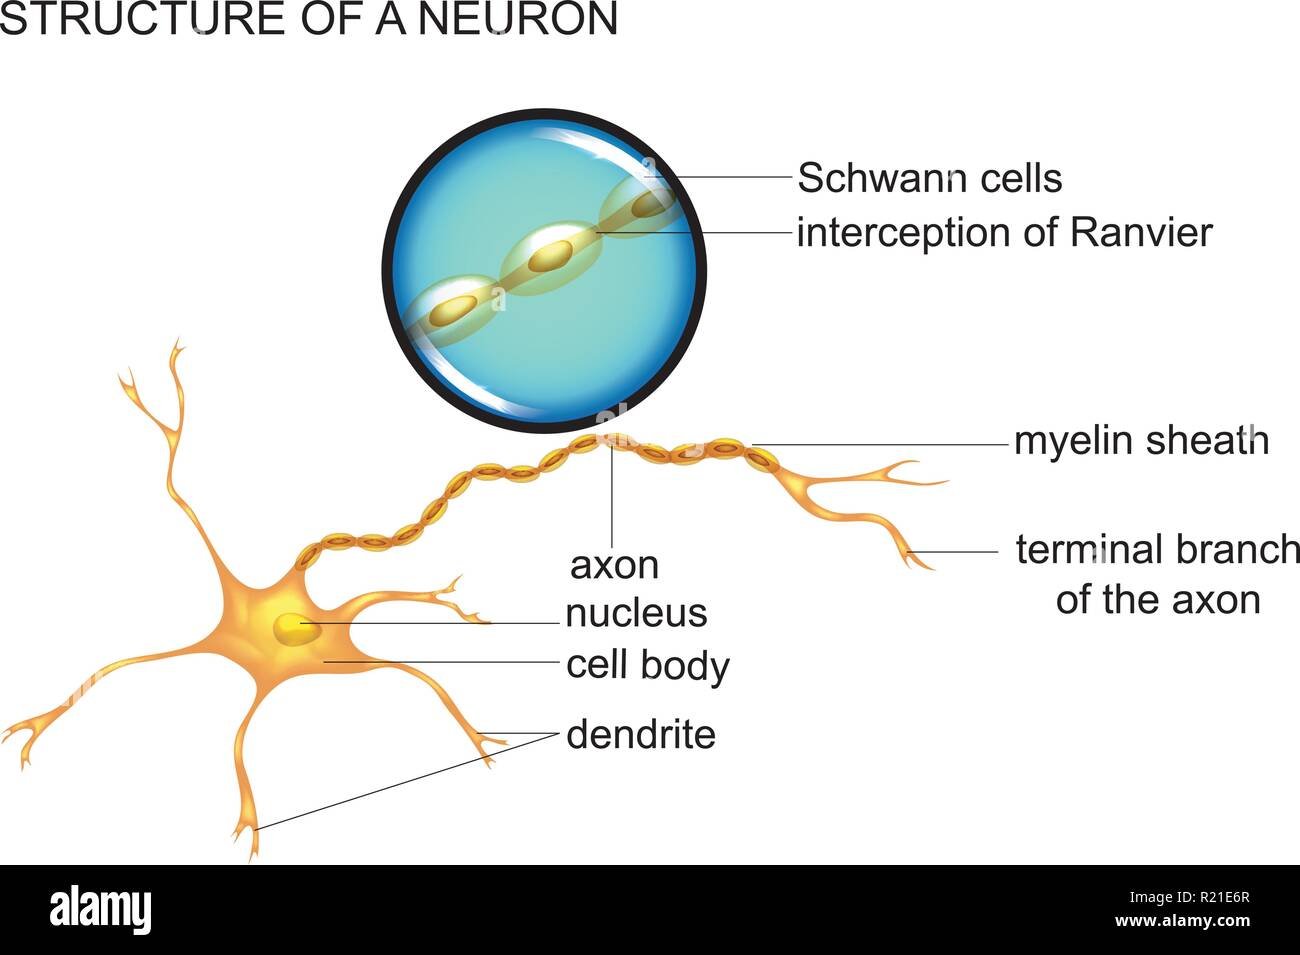 vector illustration of nerve cell structure, neuron - Stock Image